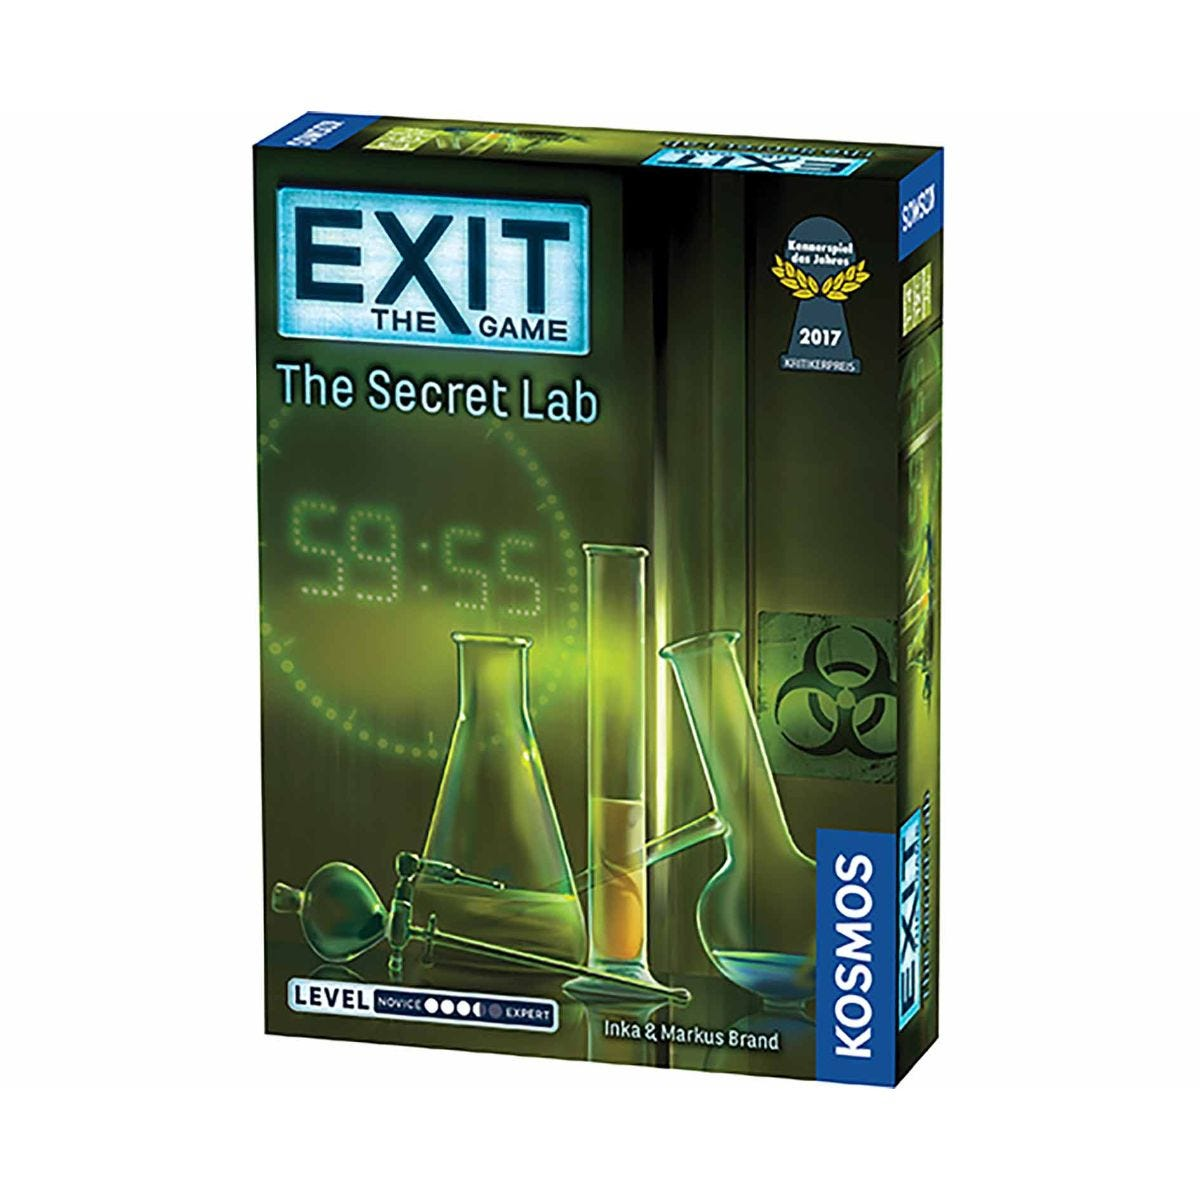 Visualizza prodotto: Thames and Kosmos Exit - The Secret Lab Escape Room Board Game